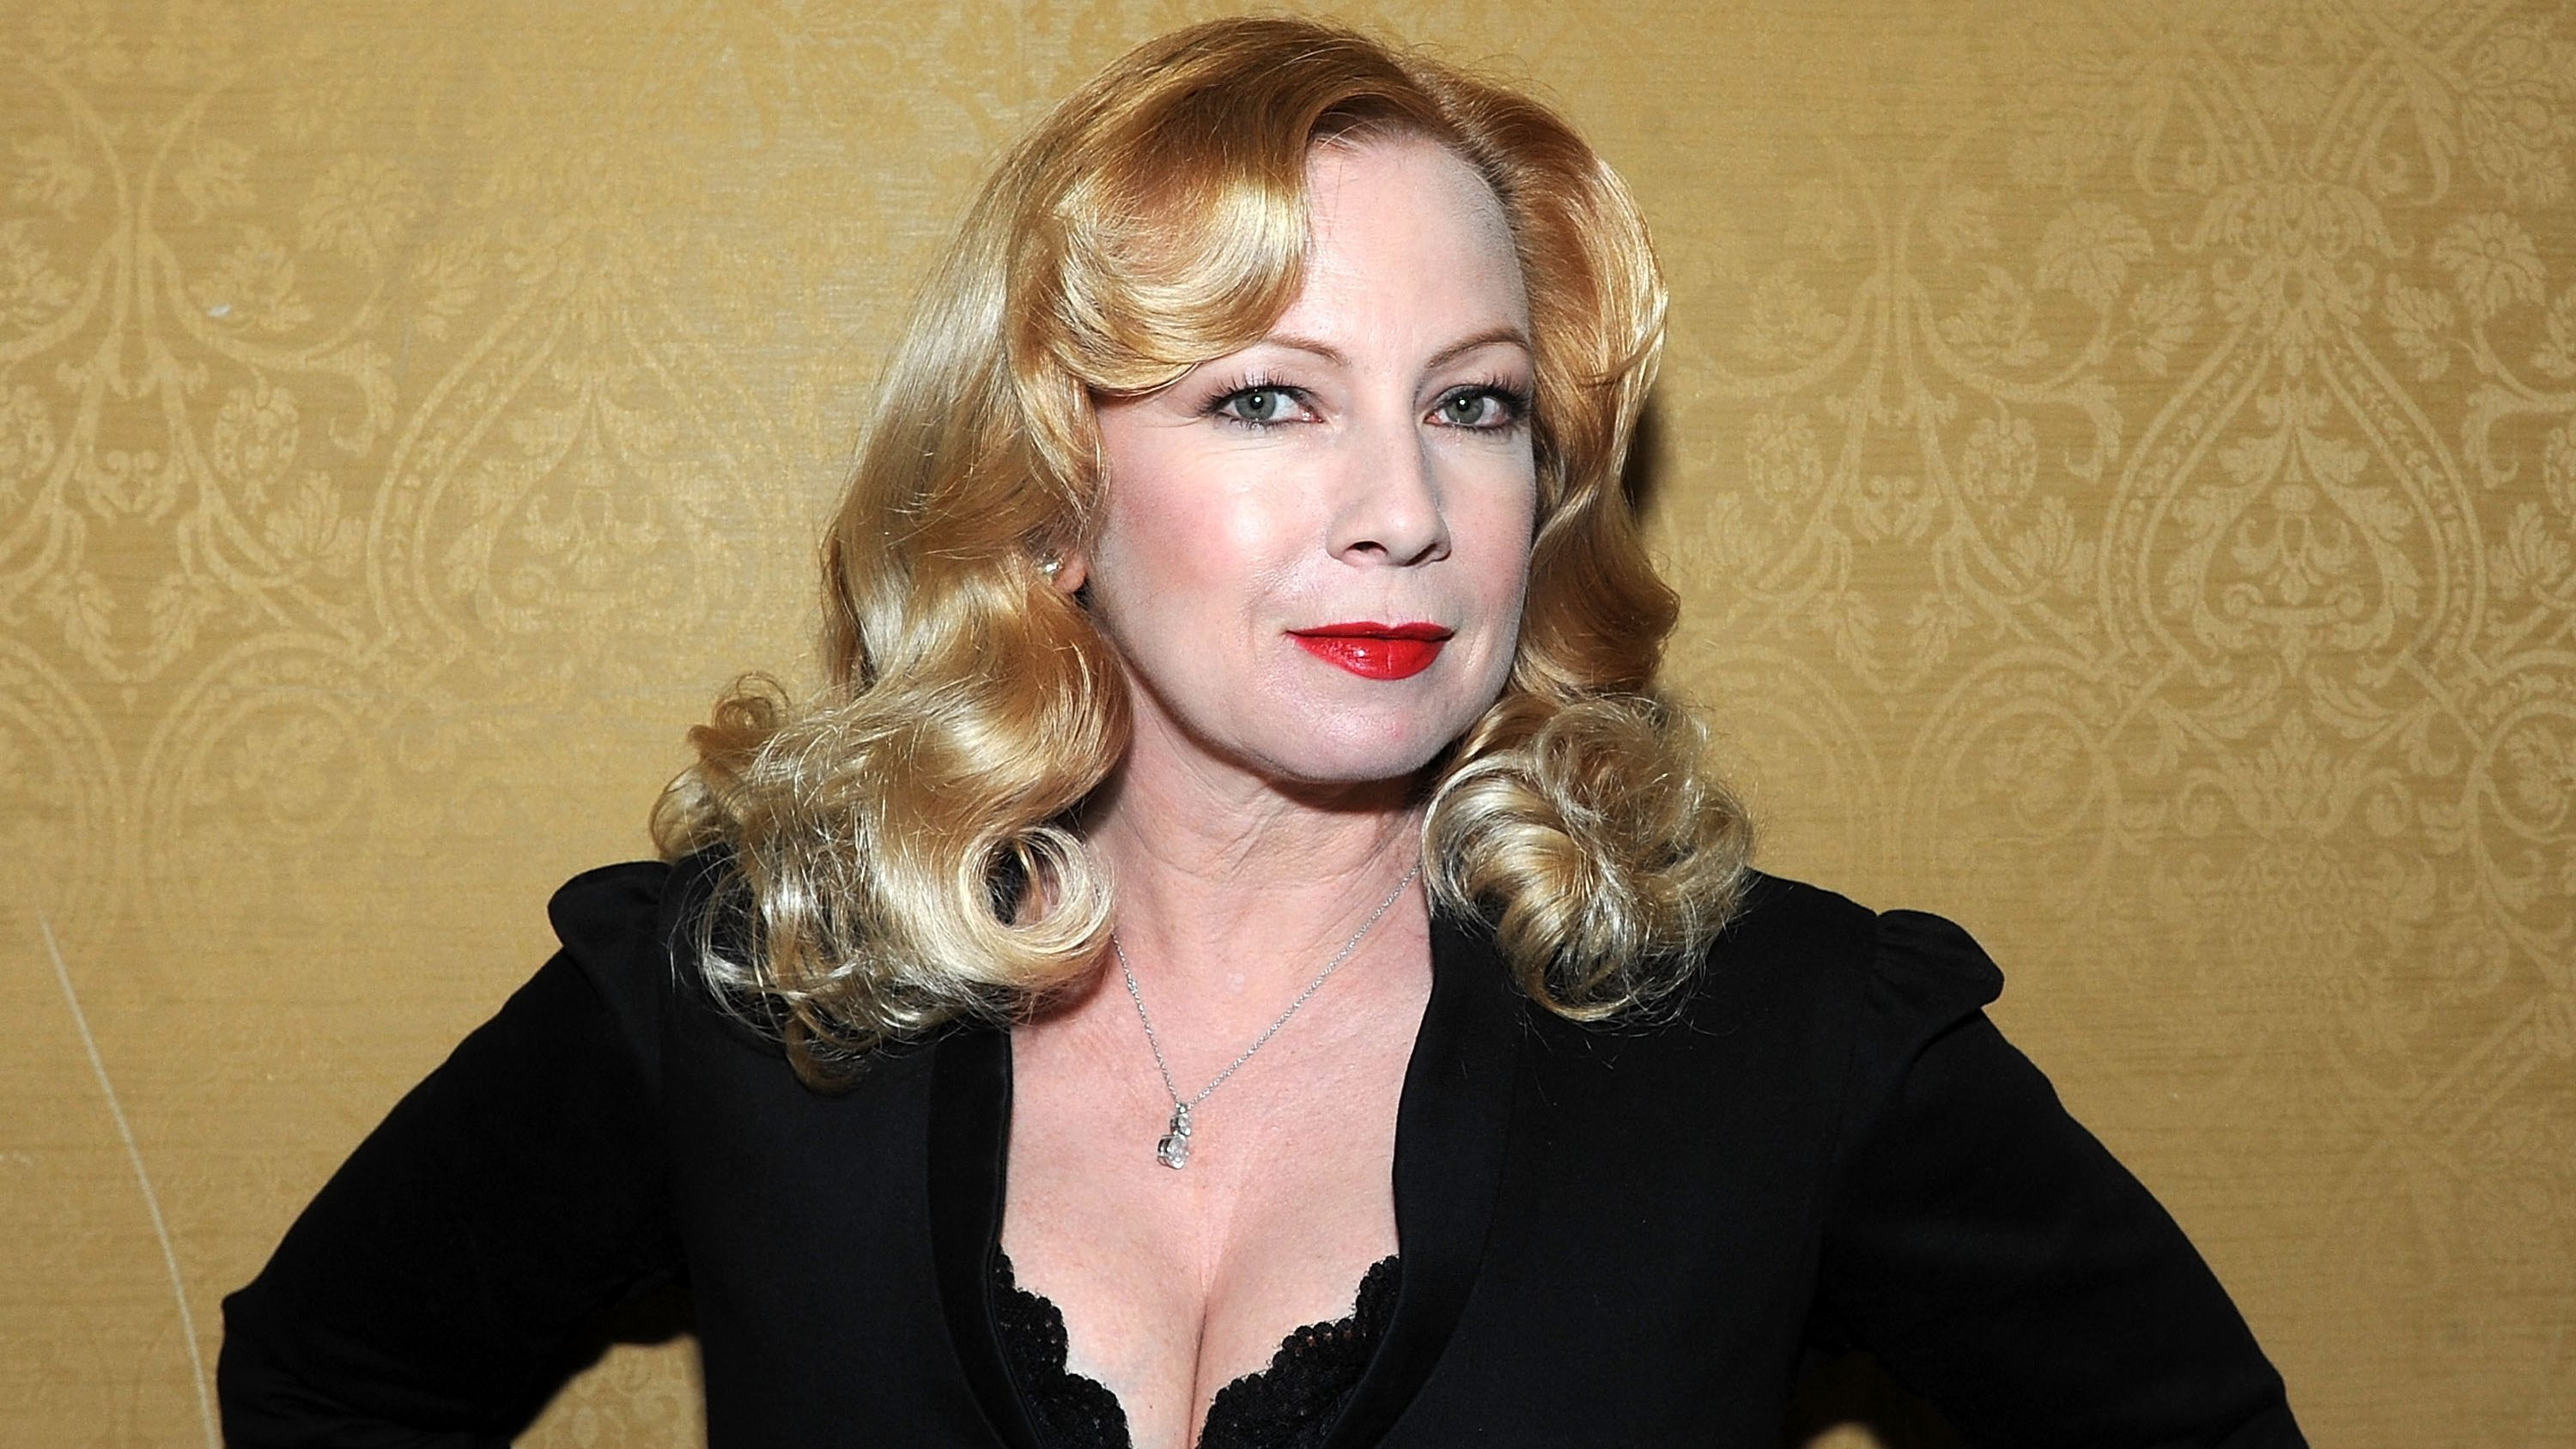 The traci lords those young